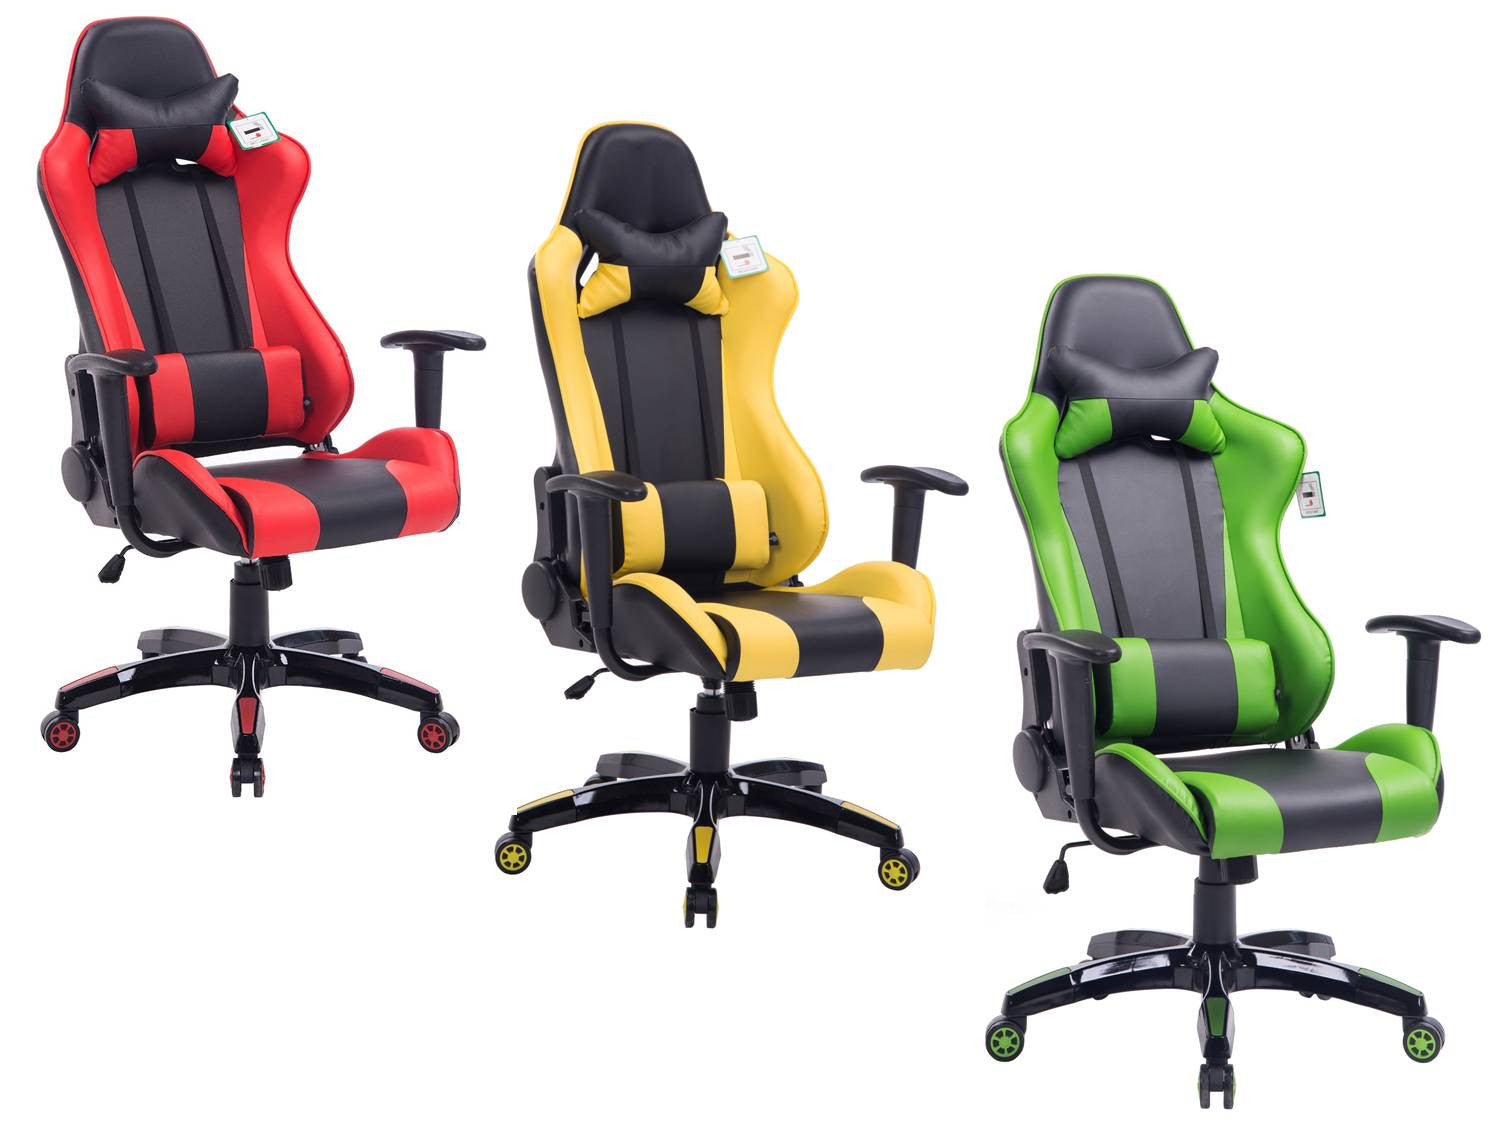 CTF PRO Racing Gaming Metal Frame High Back Swivel Office Chair MO45